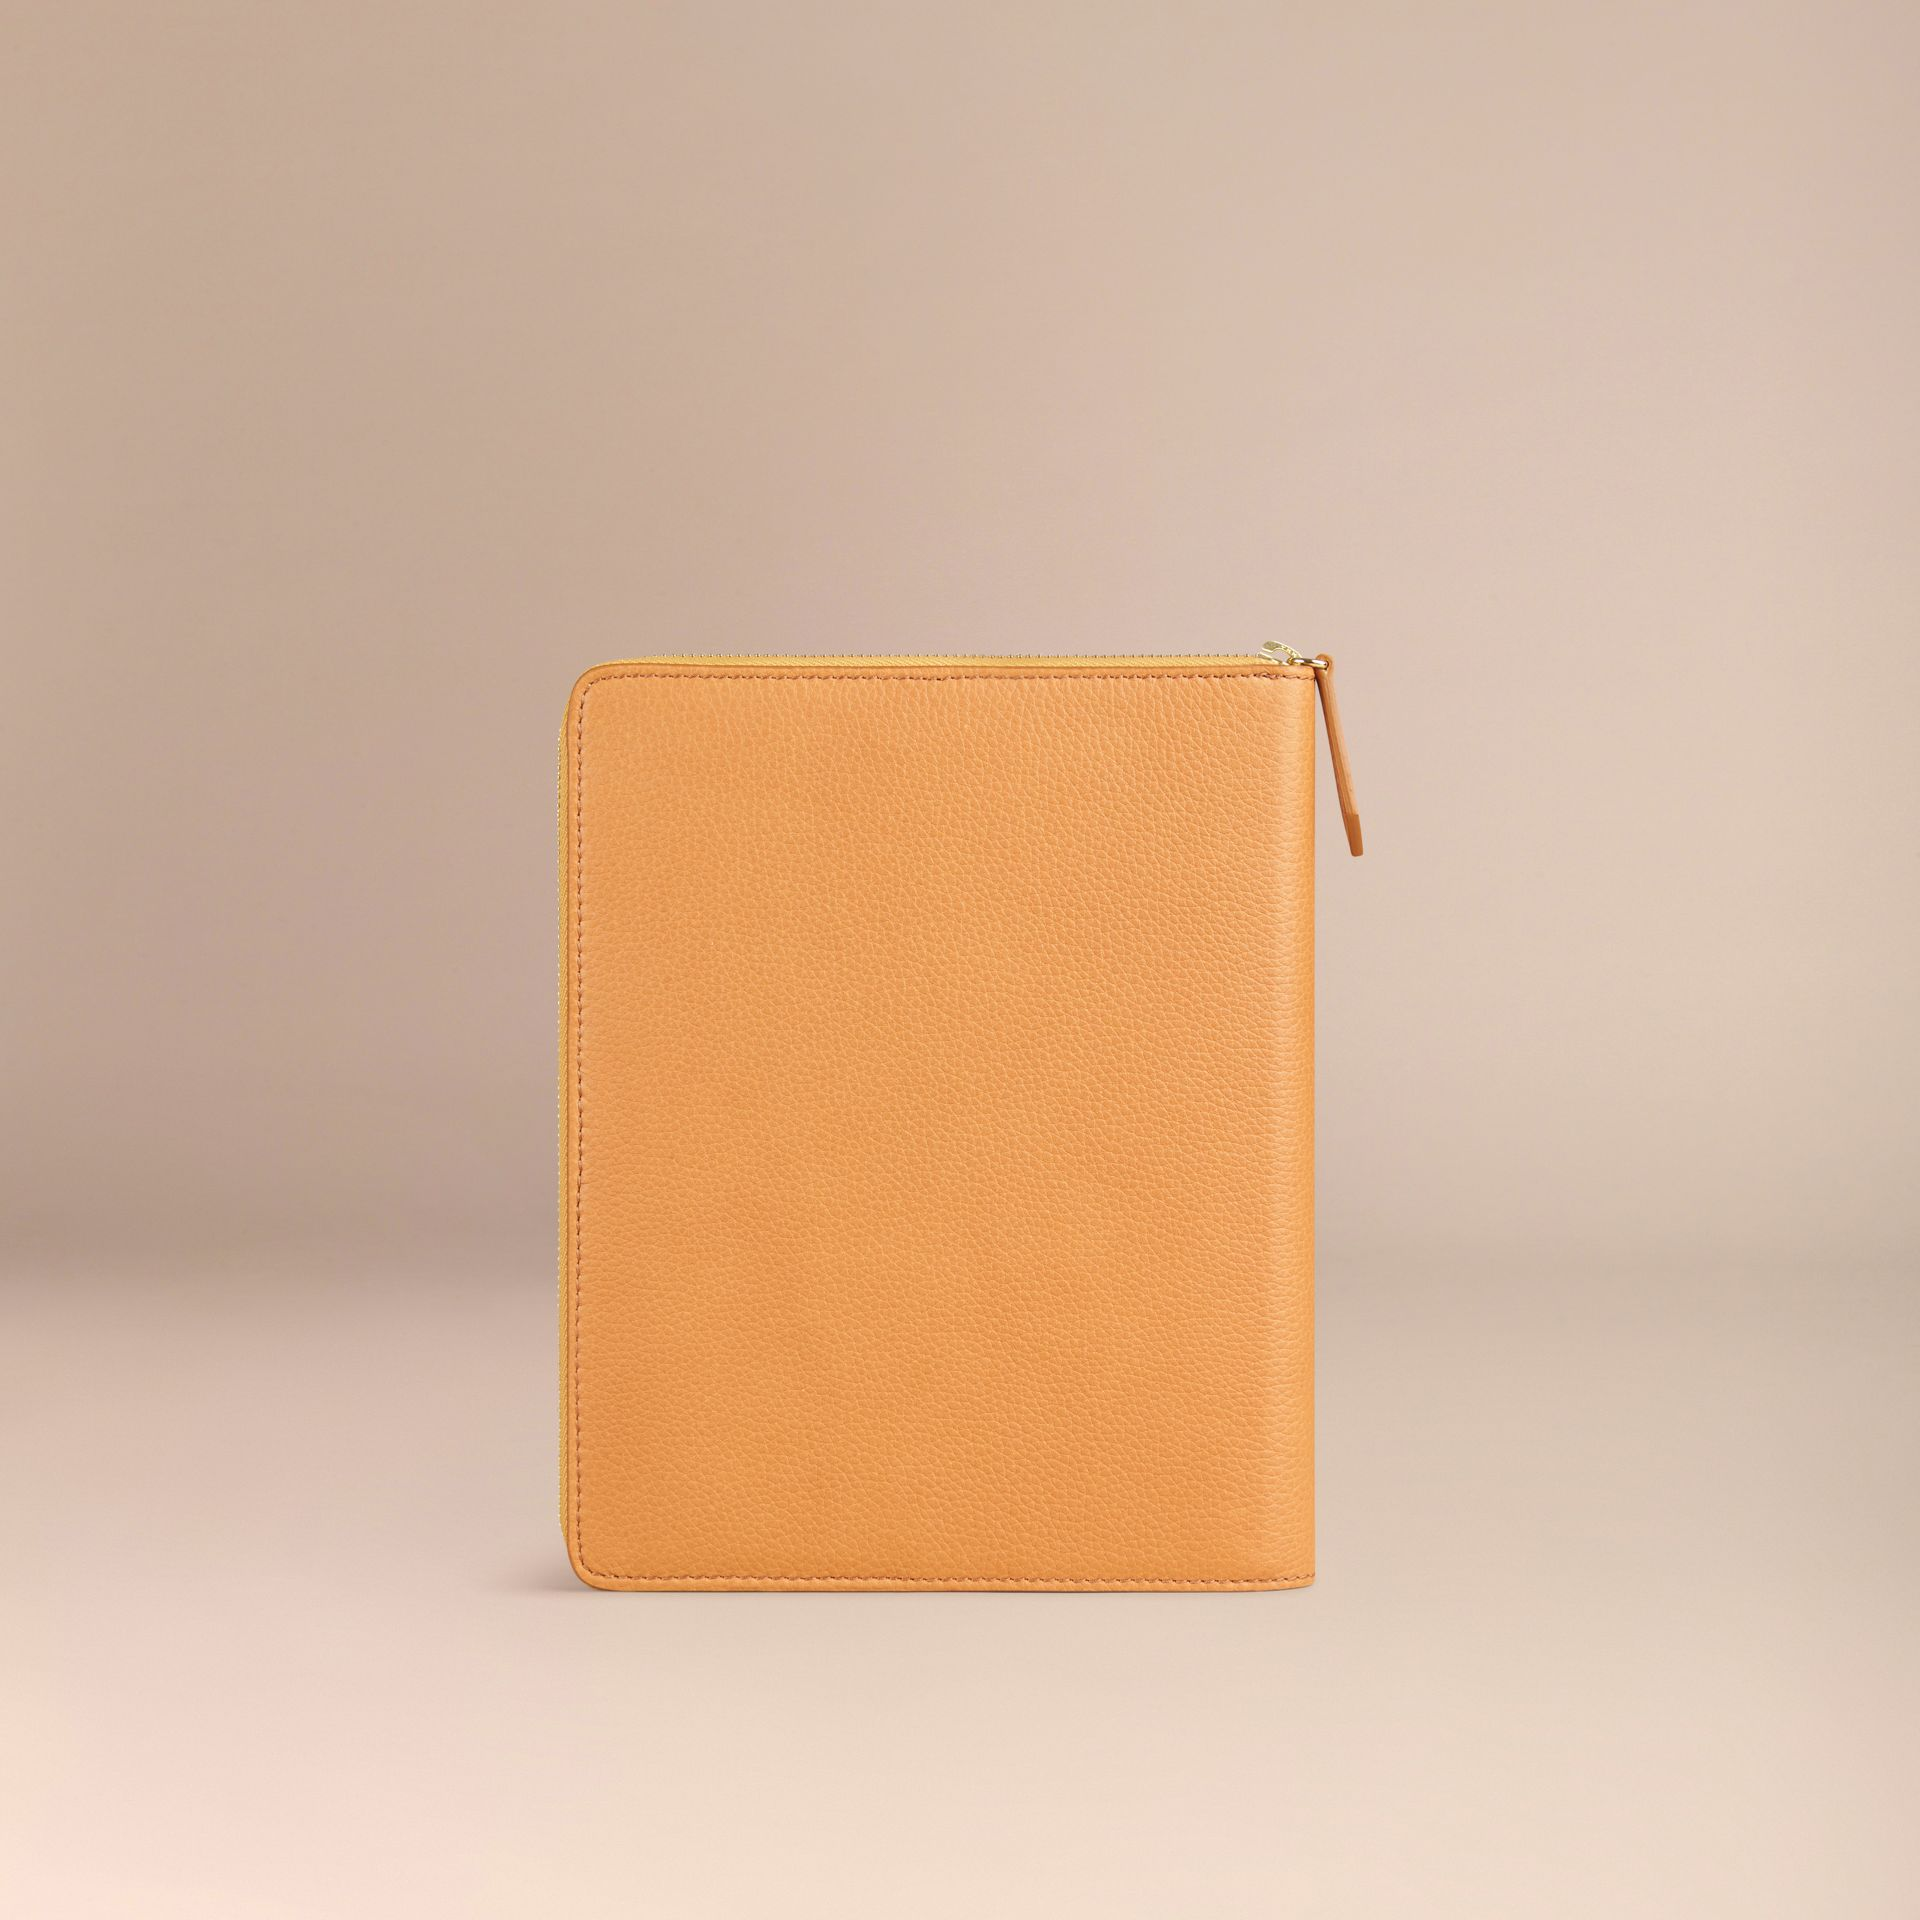 Ziparound Grainy Leather 18 Month 2016/17 A5 Diary in Ochre Yellow | Burberry - gallery image 3